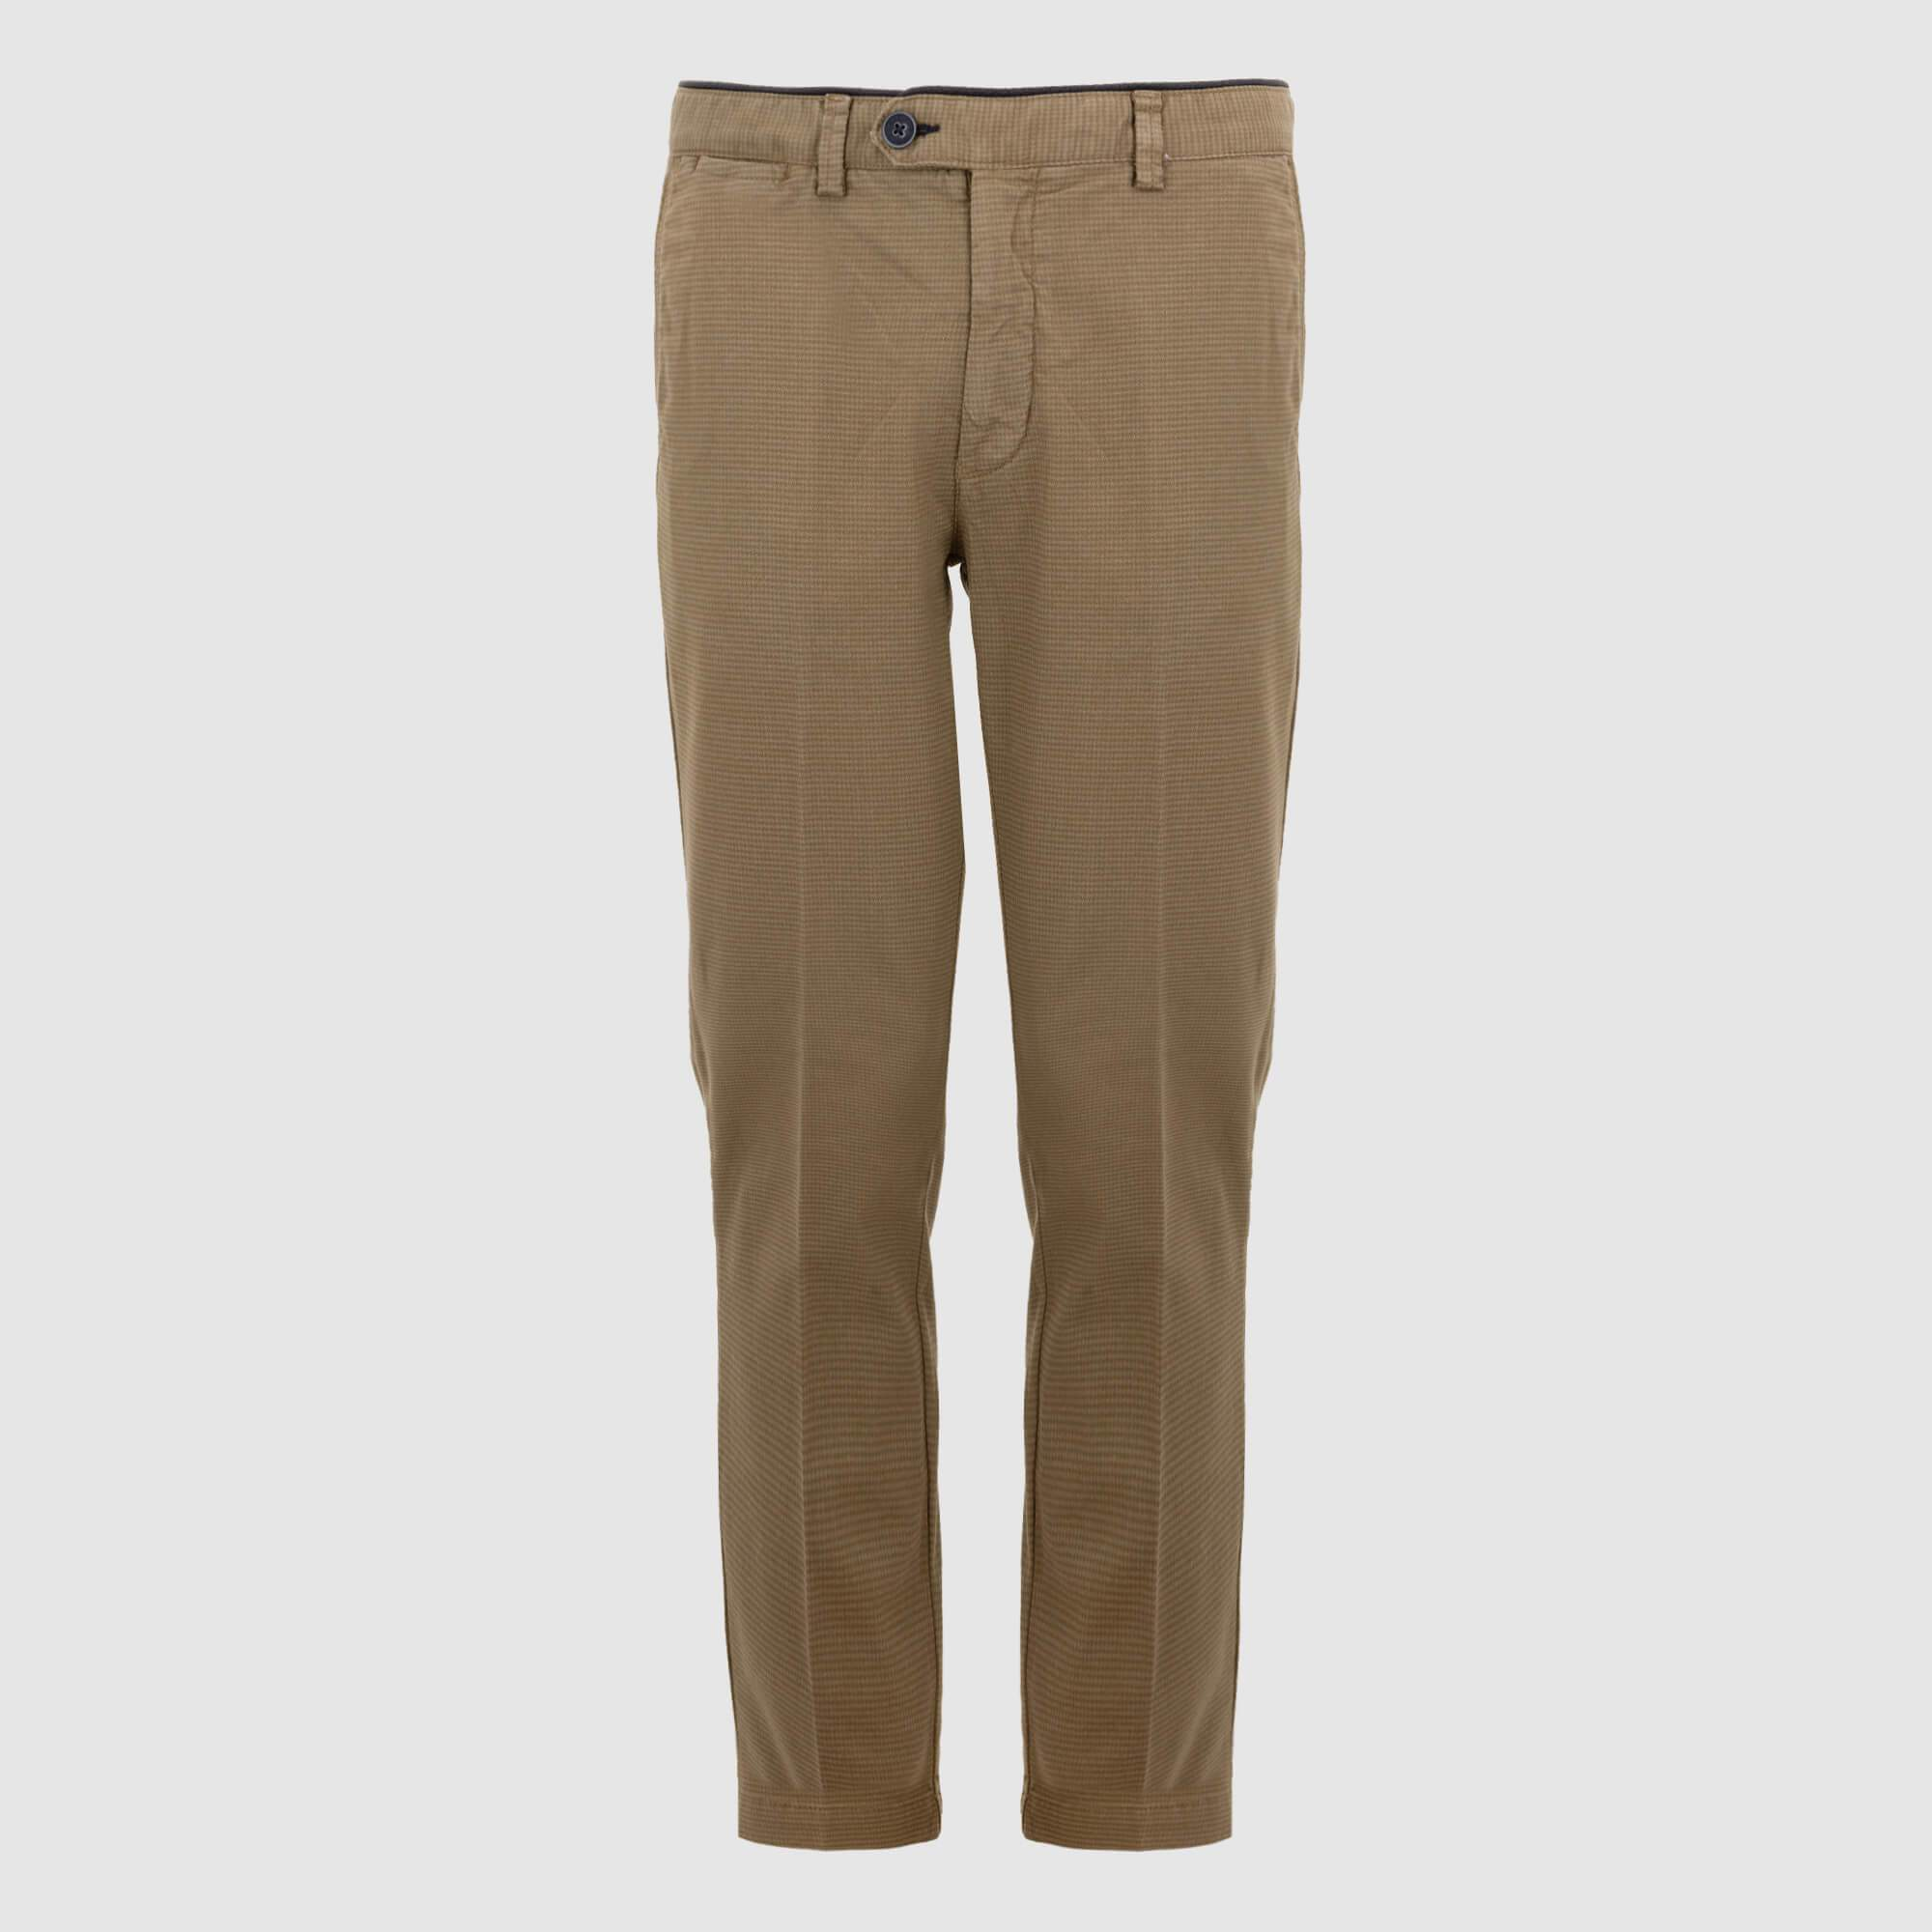 Pantalón chino con micro estampado regular fit 921014/82